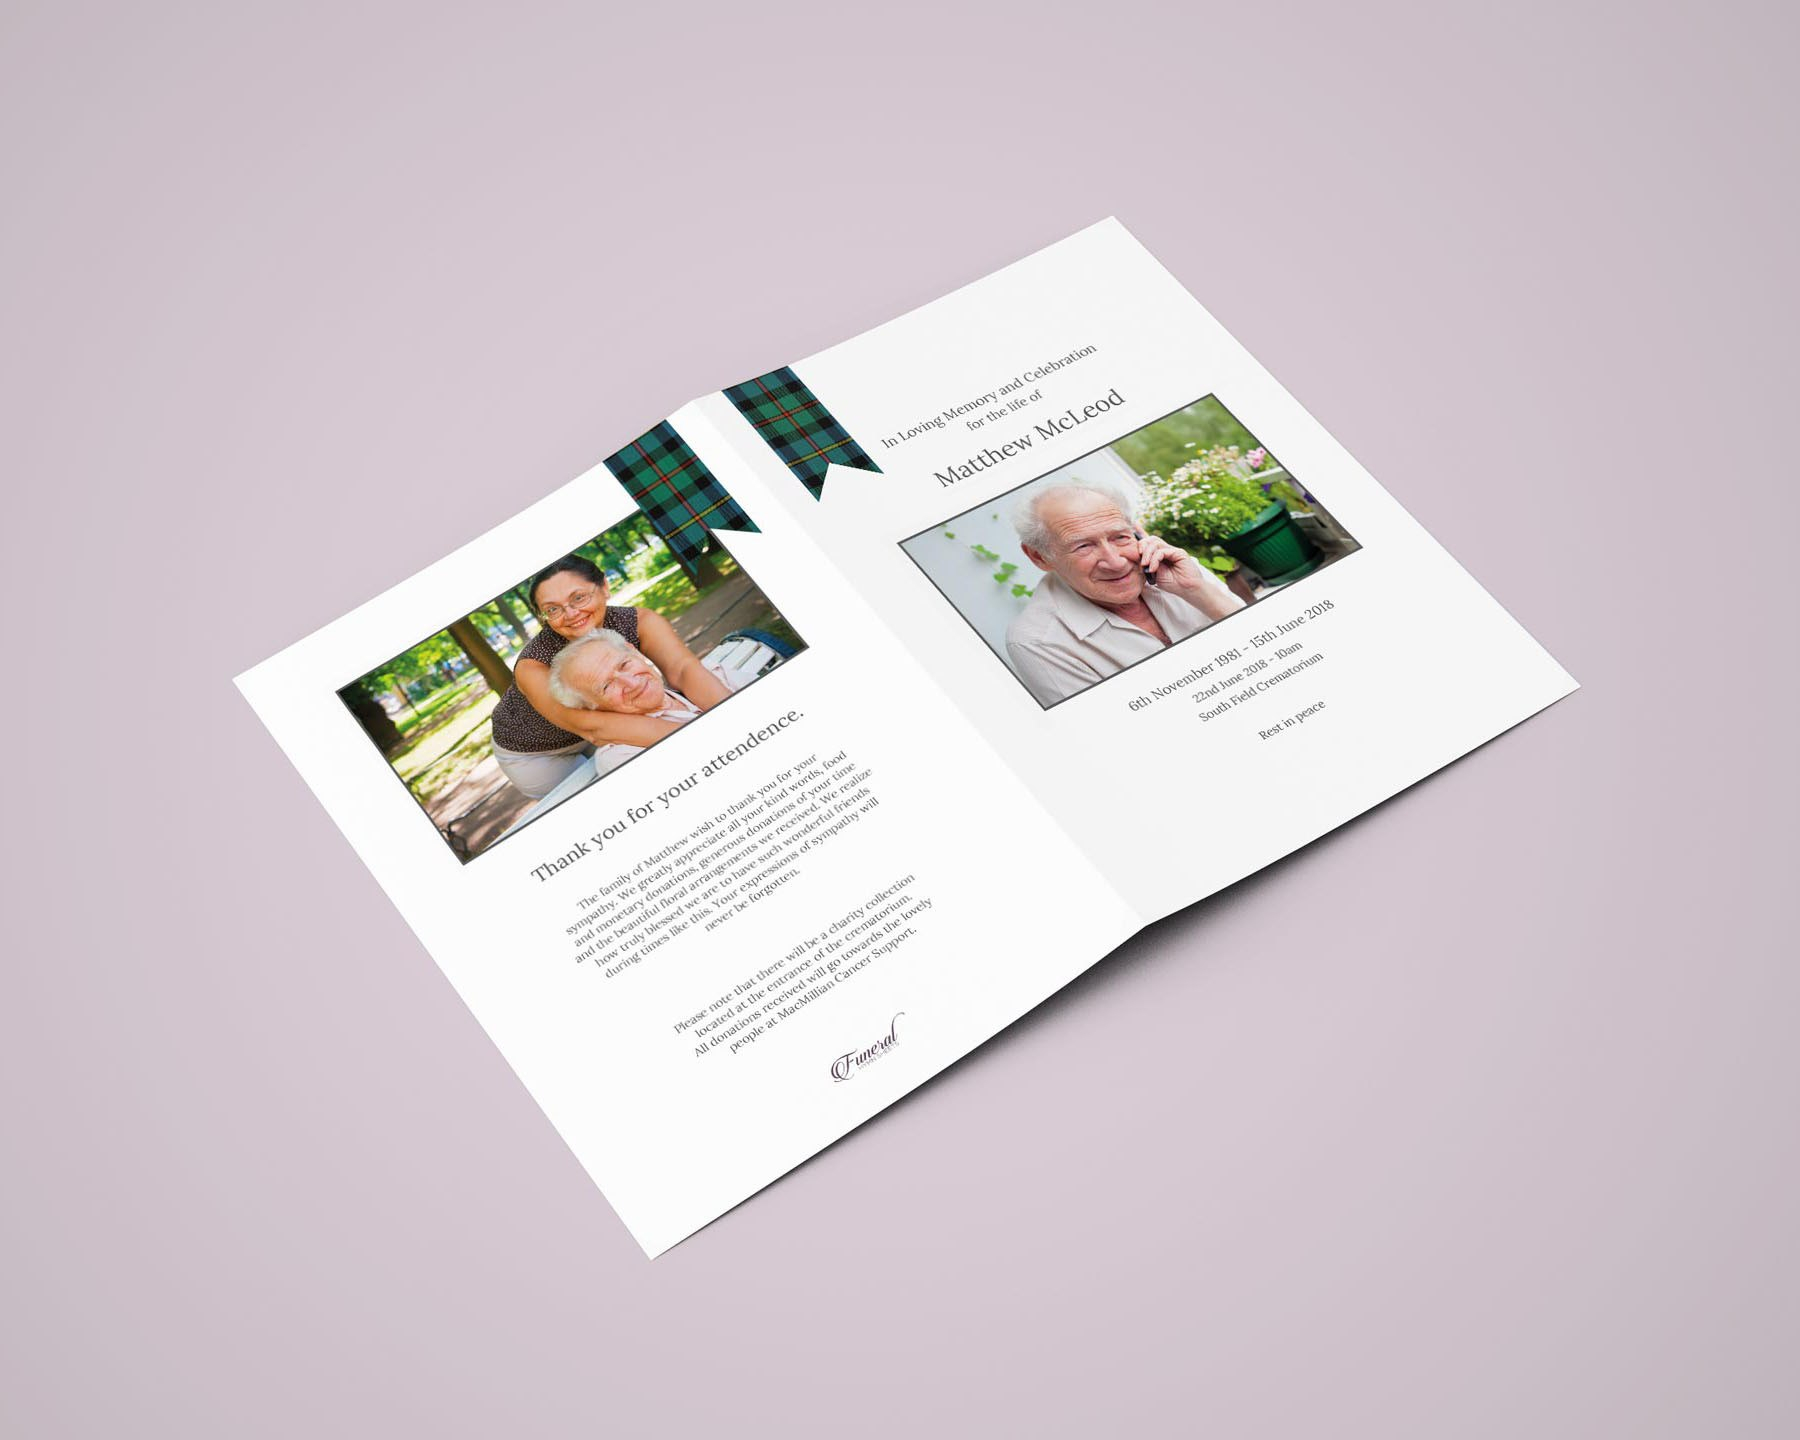 Funeral Powerpoint Template Sample – Hotelgransassoteramoeu Throughout Funeral Powerpoint Templates